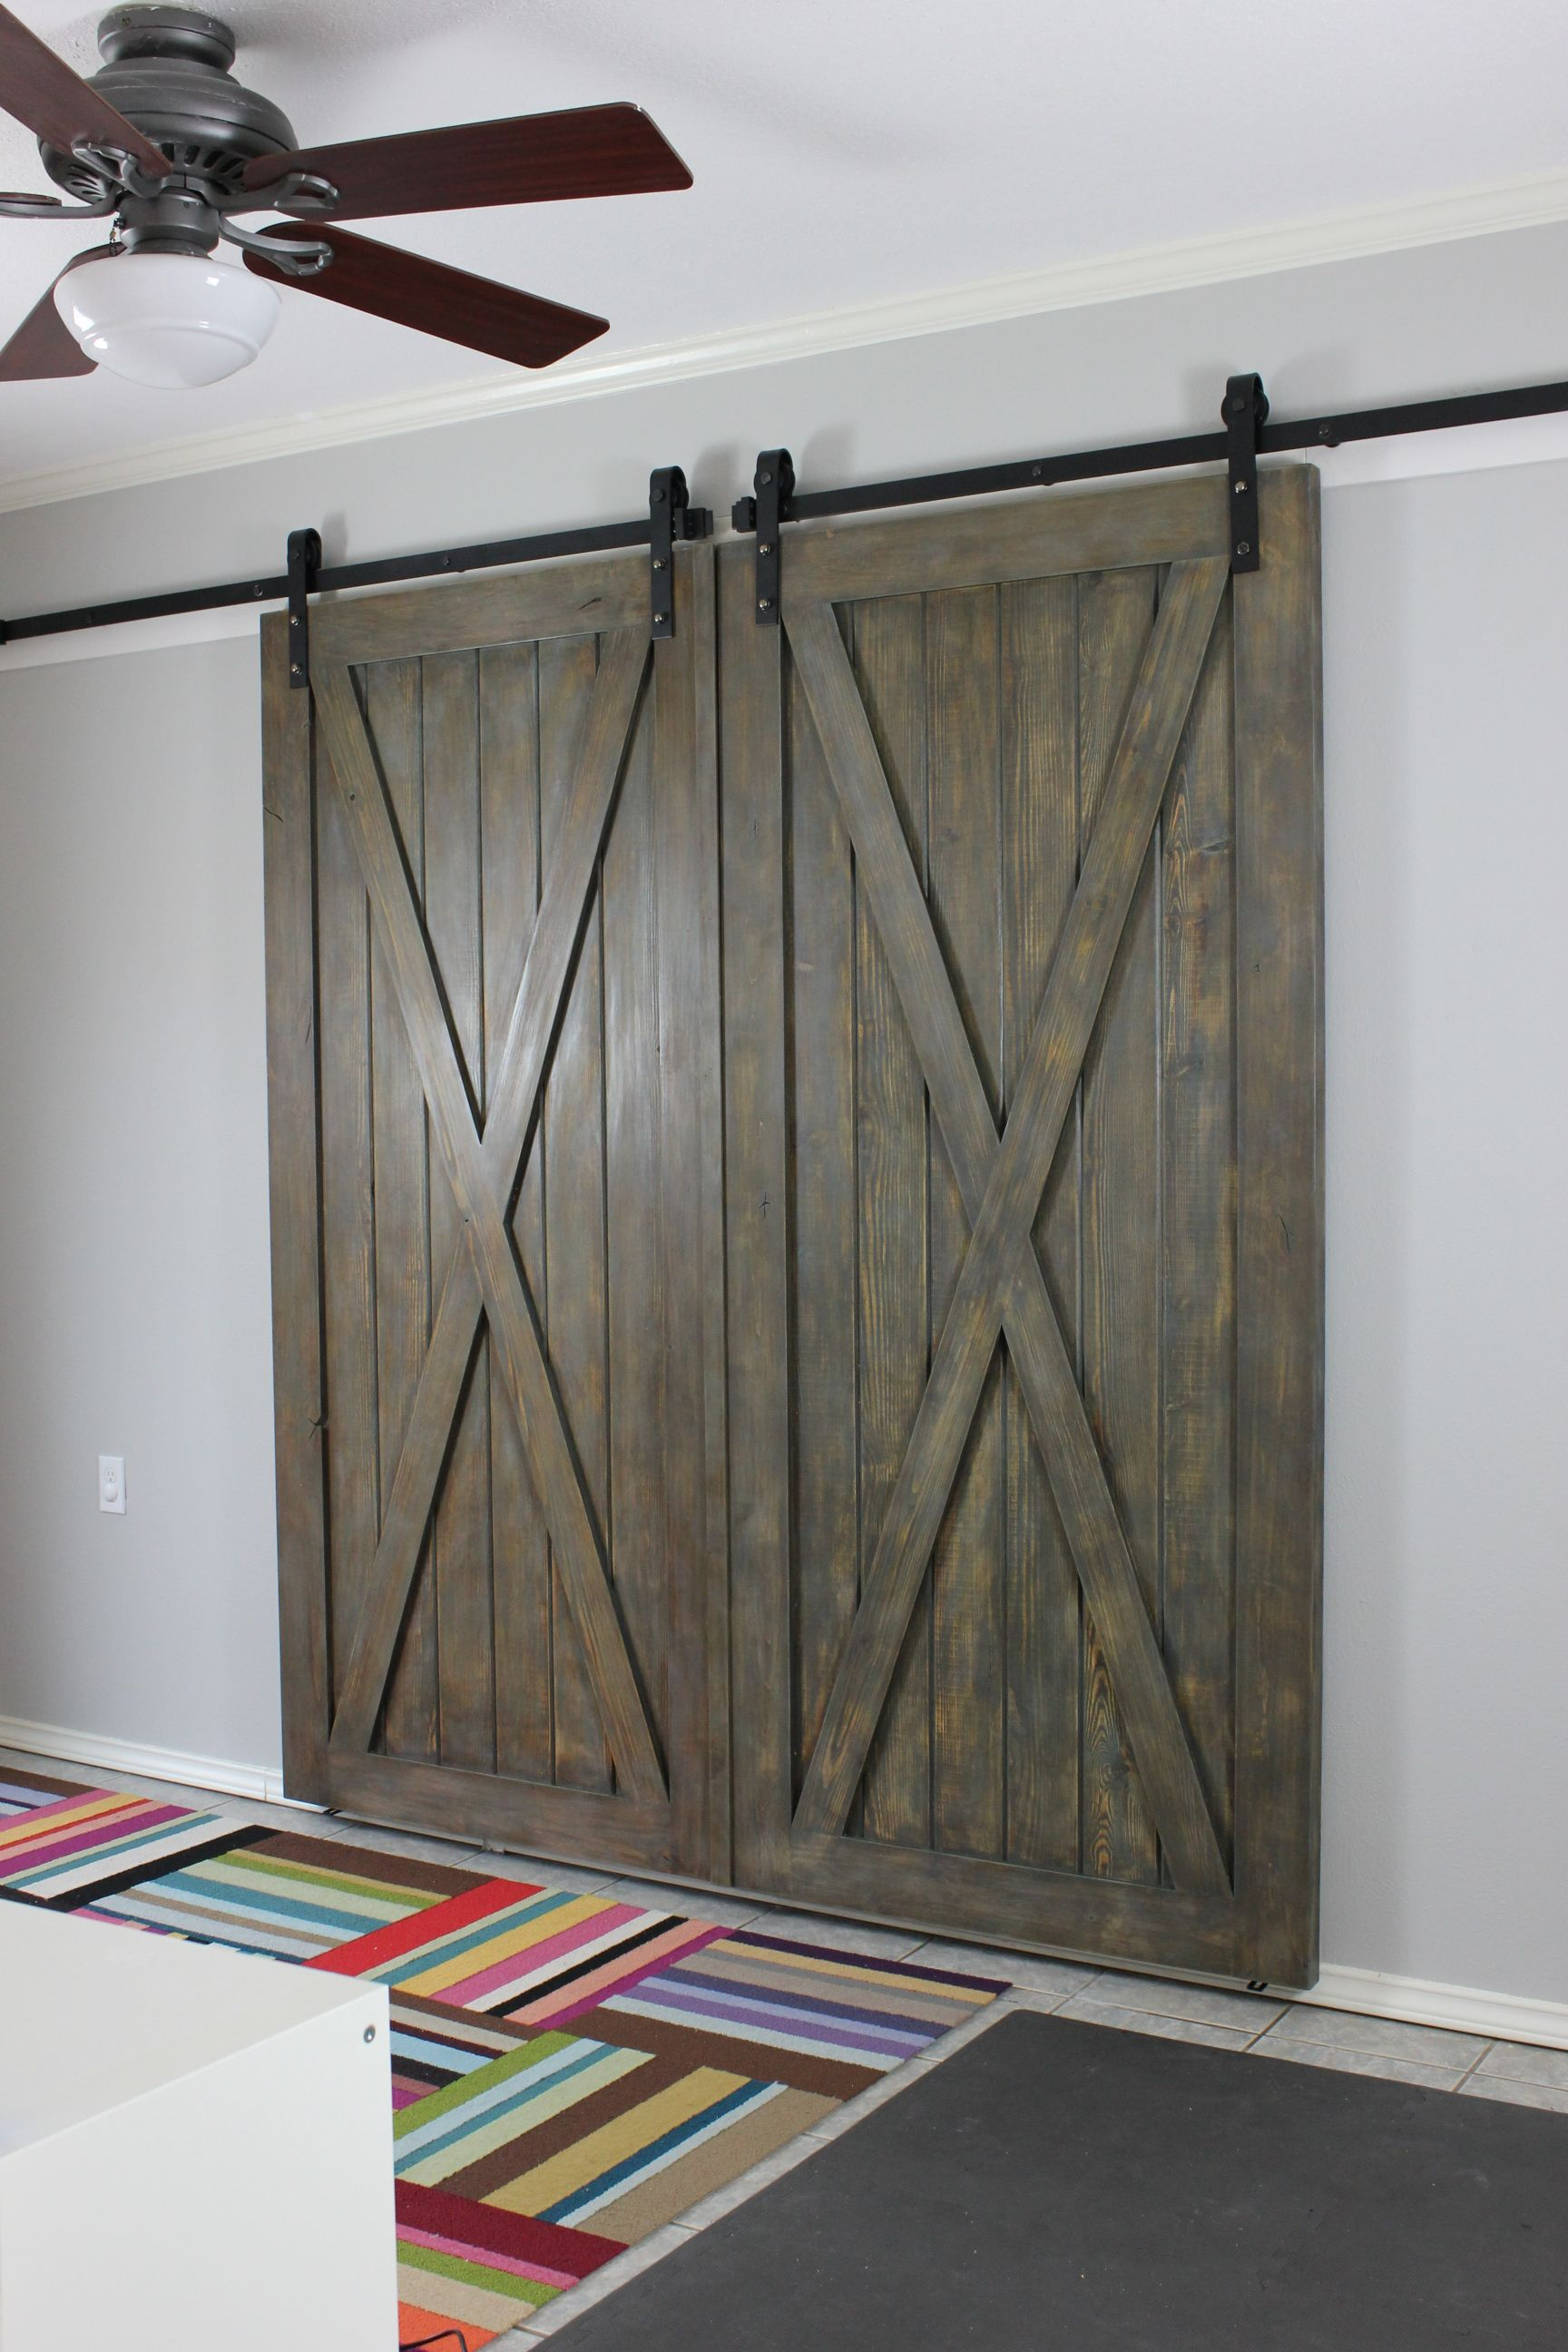 Rustic Pine Barn Door With Cross Buck Design. Faux Finished And Distressed